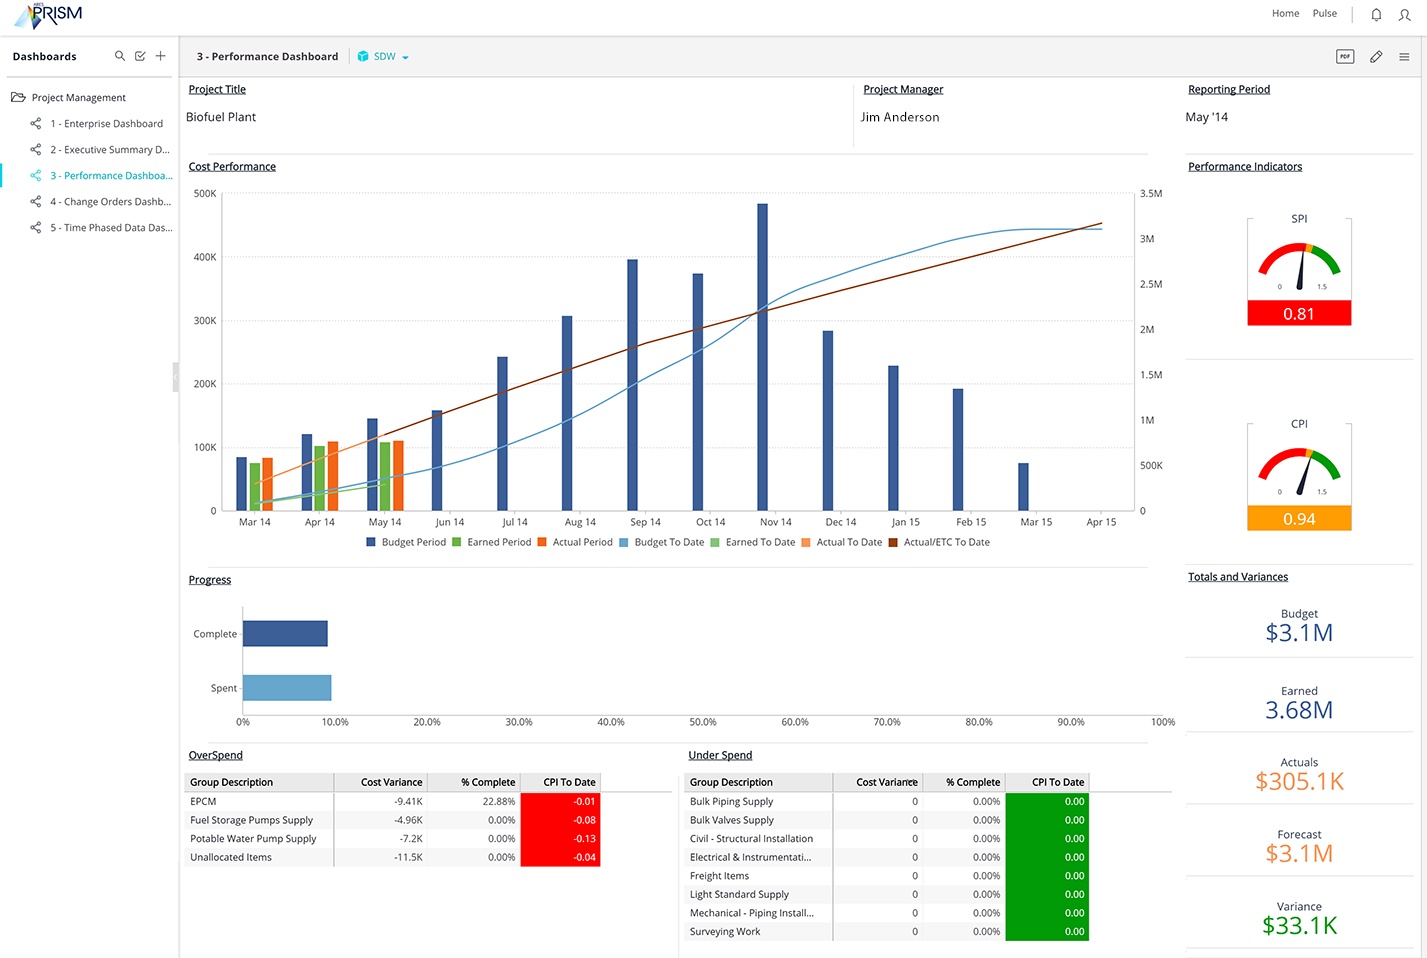 PRISM performance Dashboard